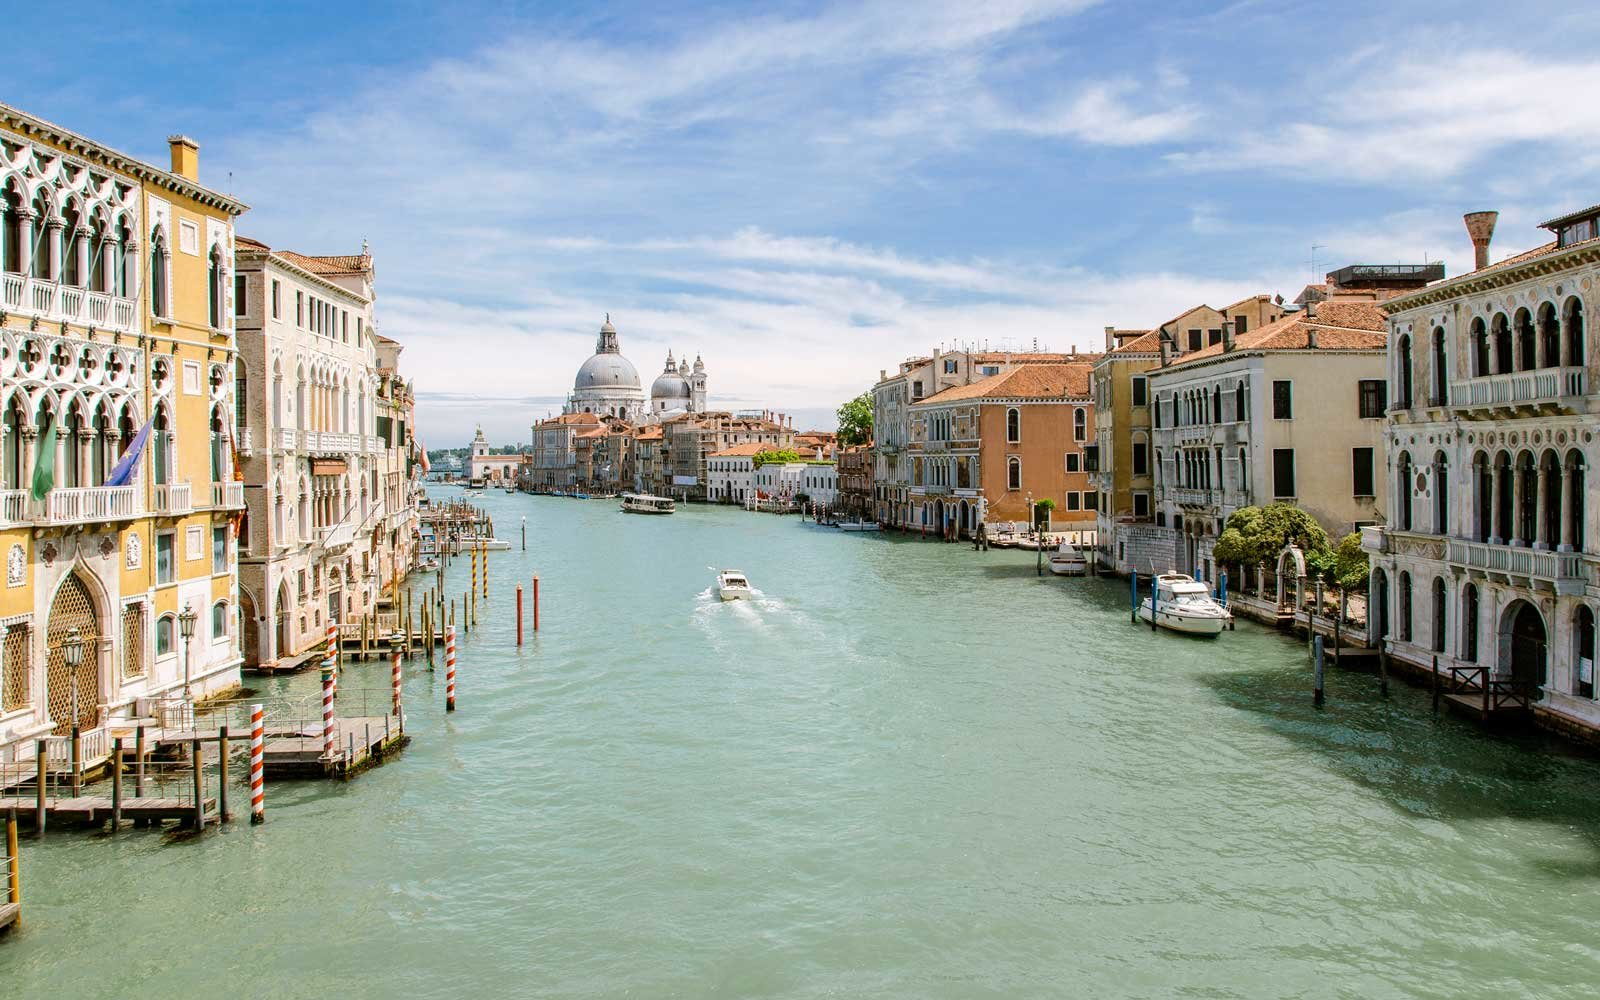 Venice police find two naked tourists swimming in canal